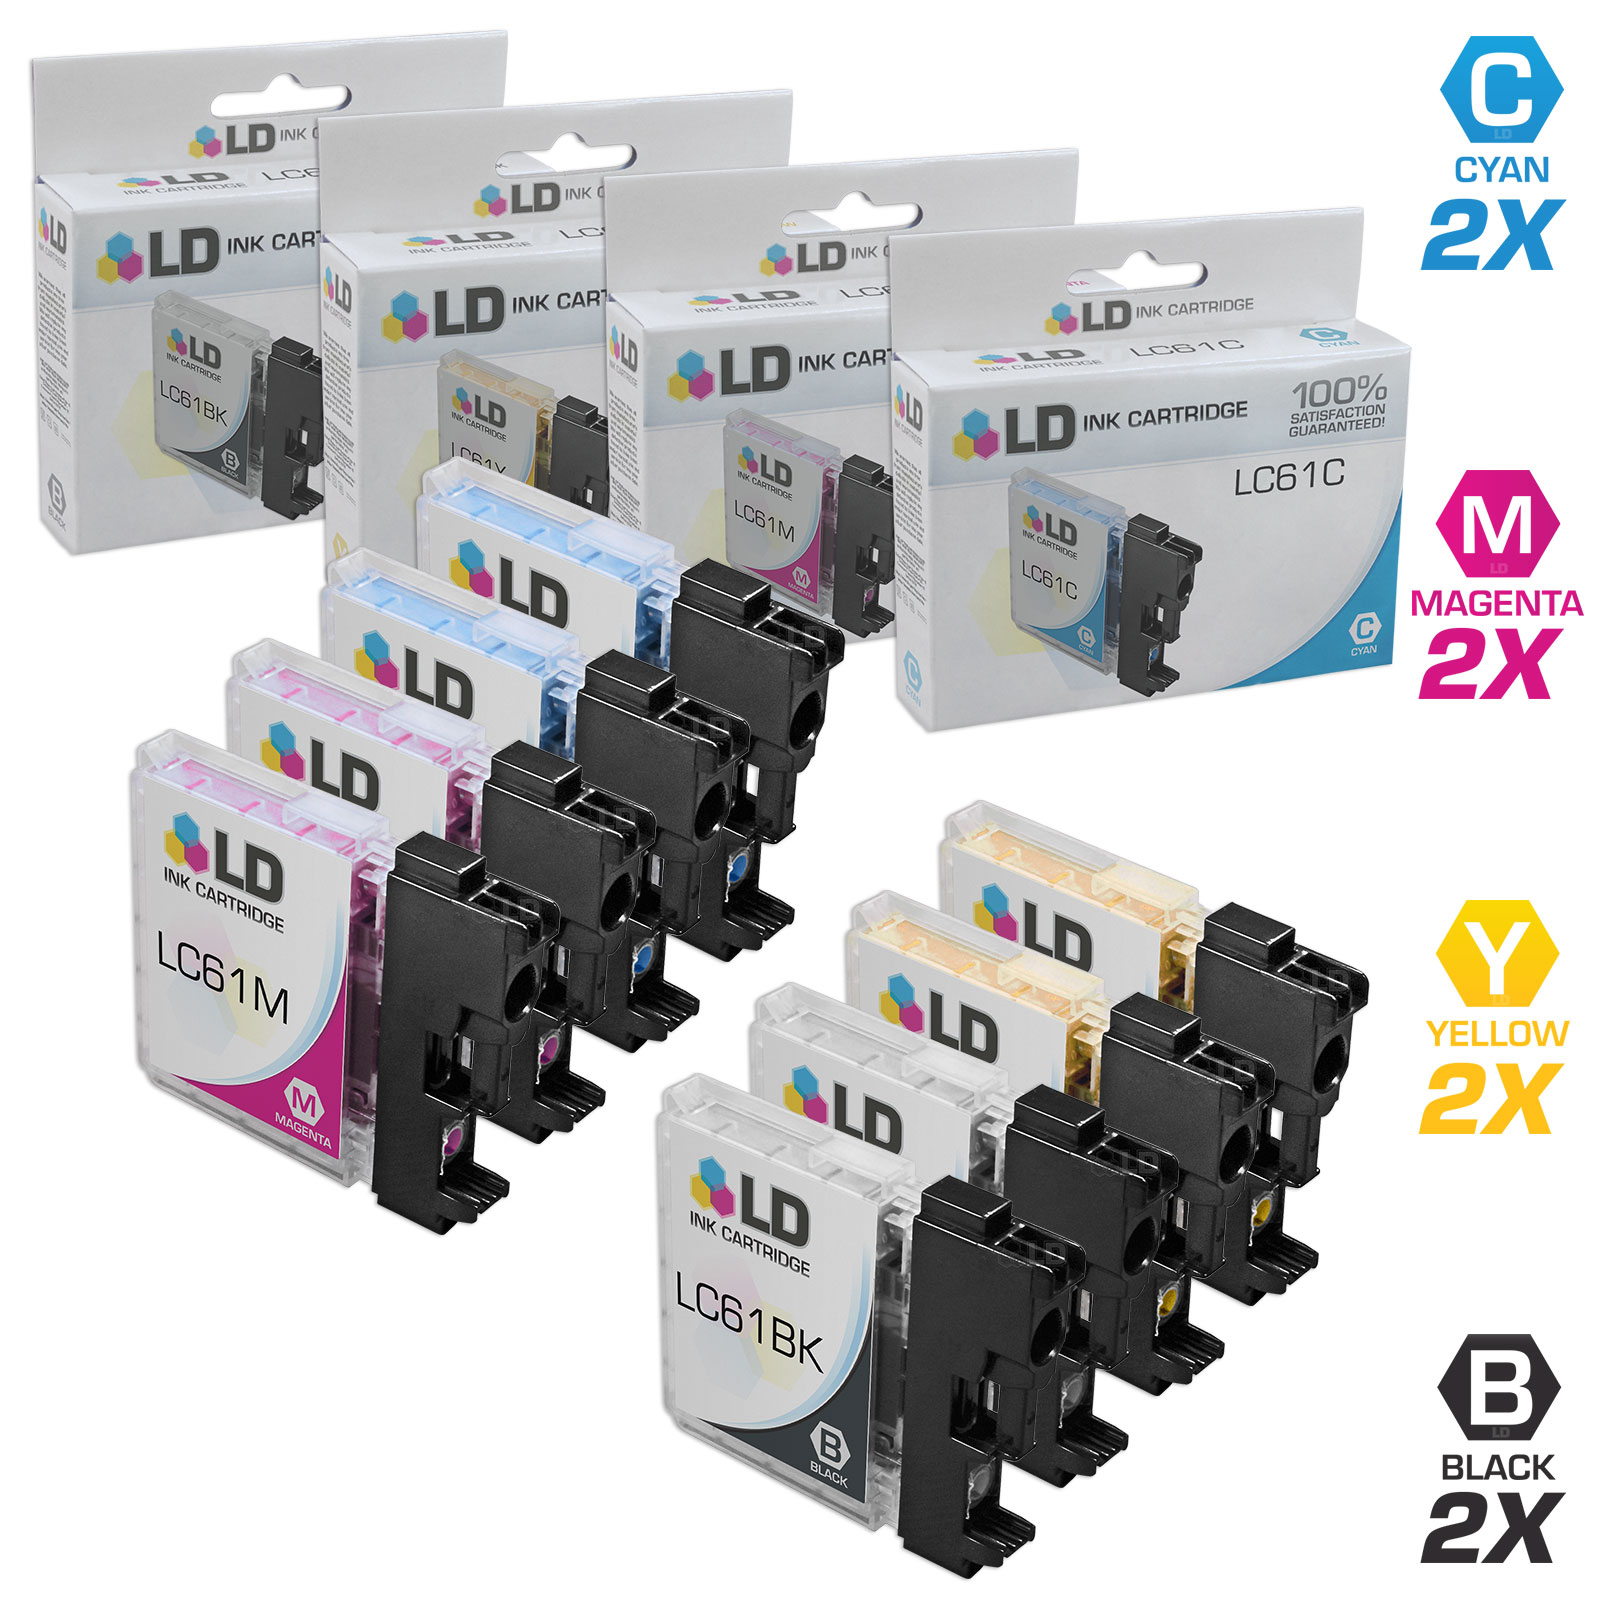 LD Compatible Brother LC61 Inkjet Cartridges: Black LC61BK, Cyan LC61C, Magenta LC61M, and 1 LC61Y Yellow